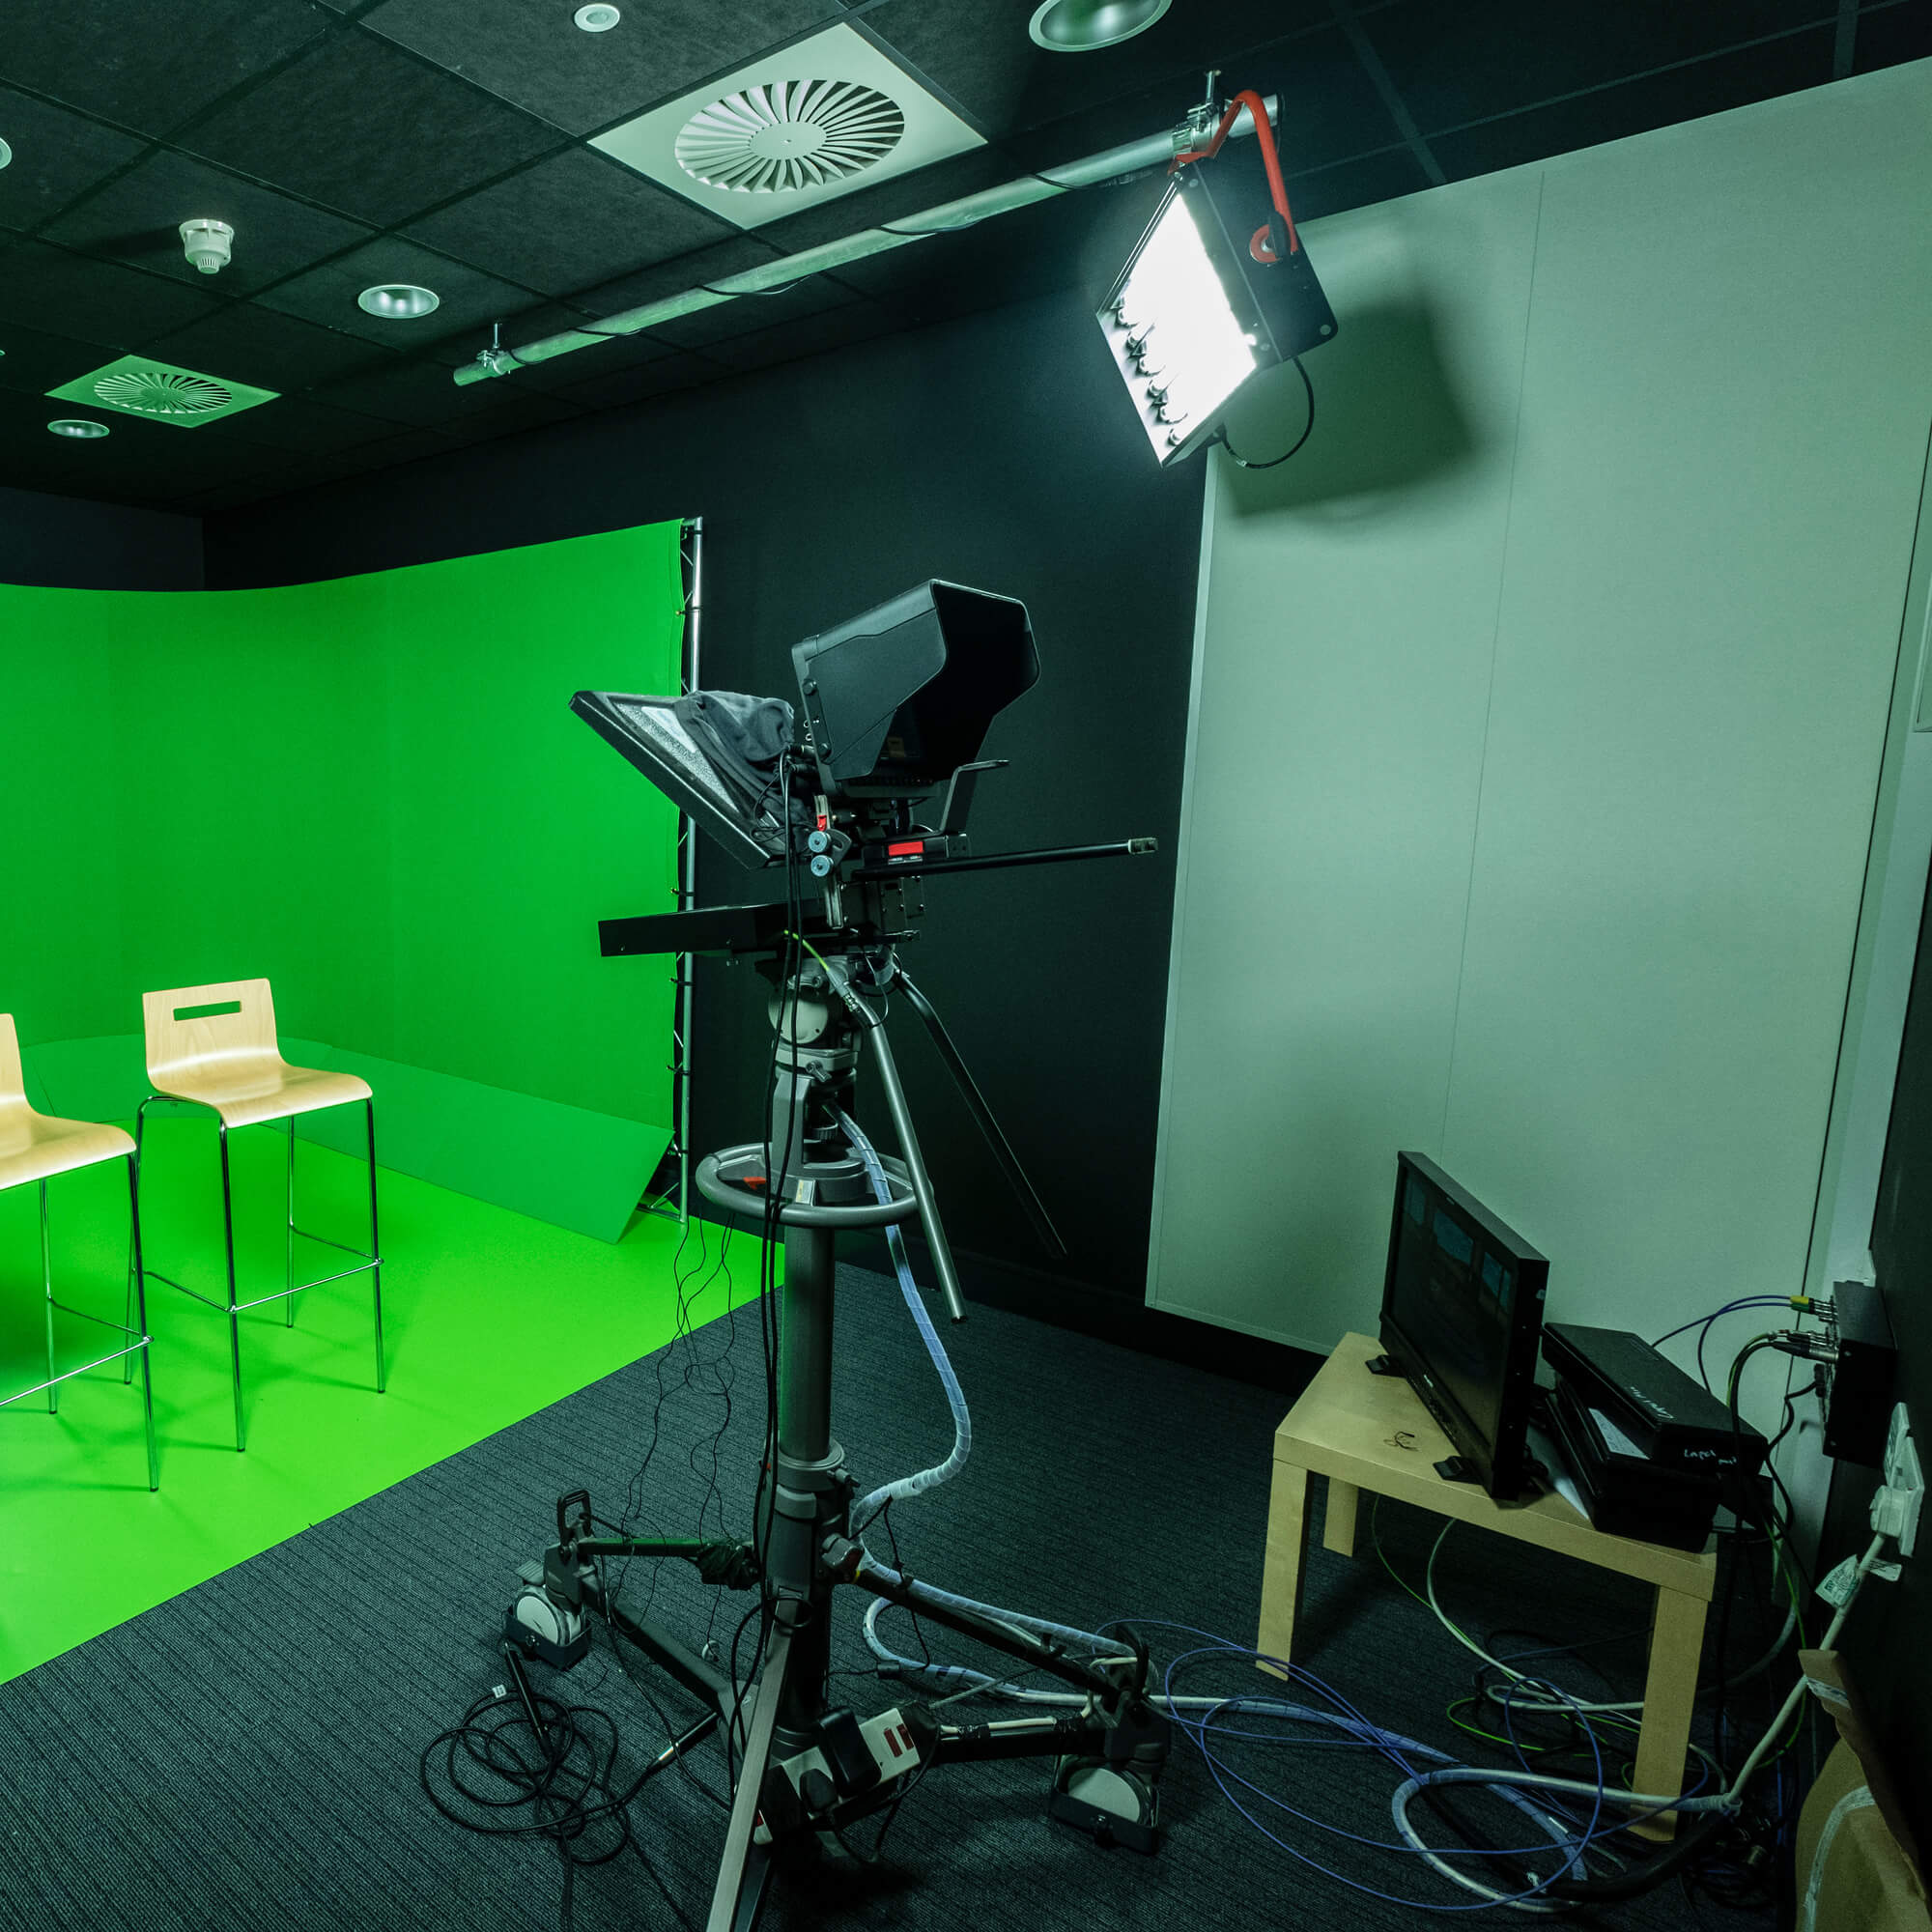 A studio with a television camera and two chairs against a green screen